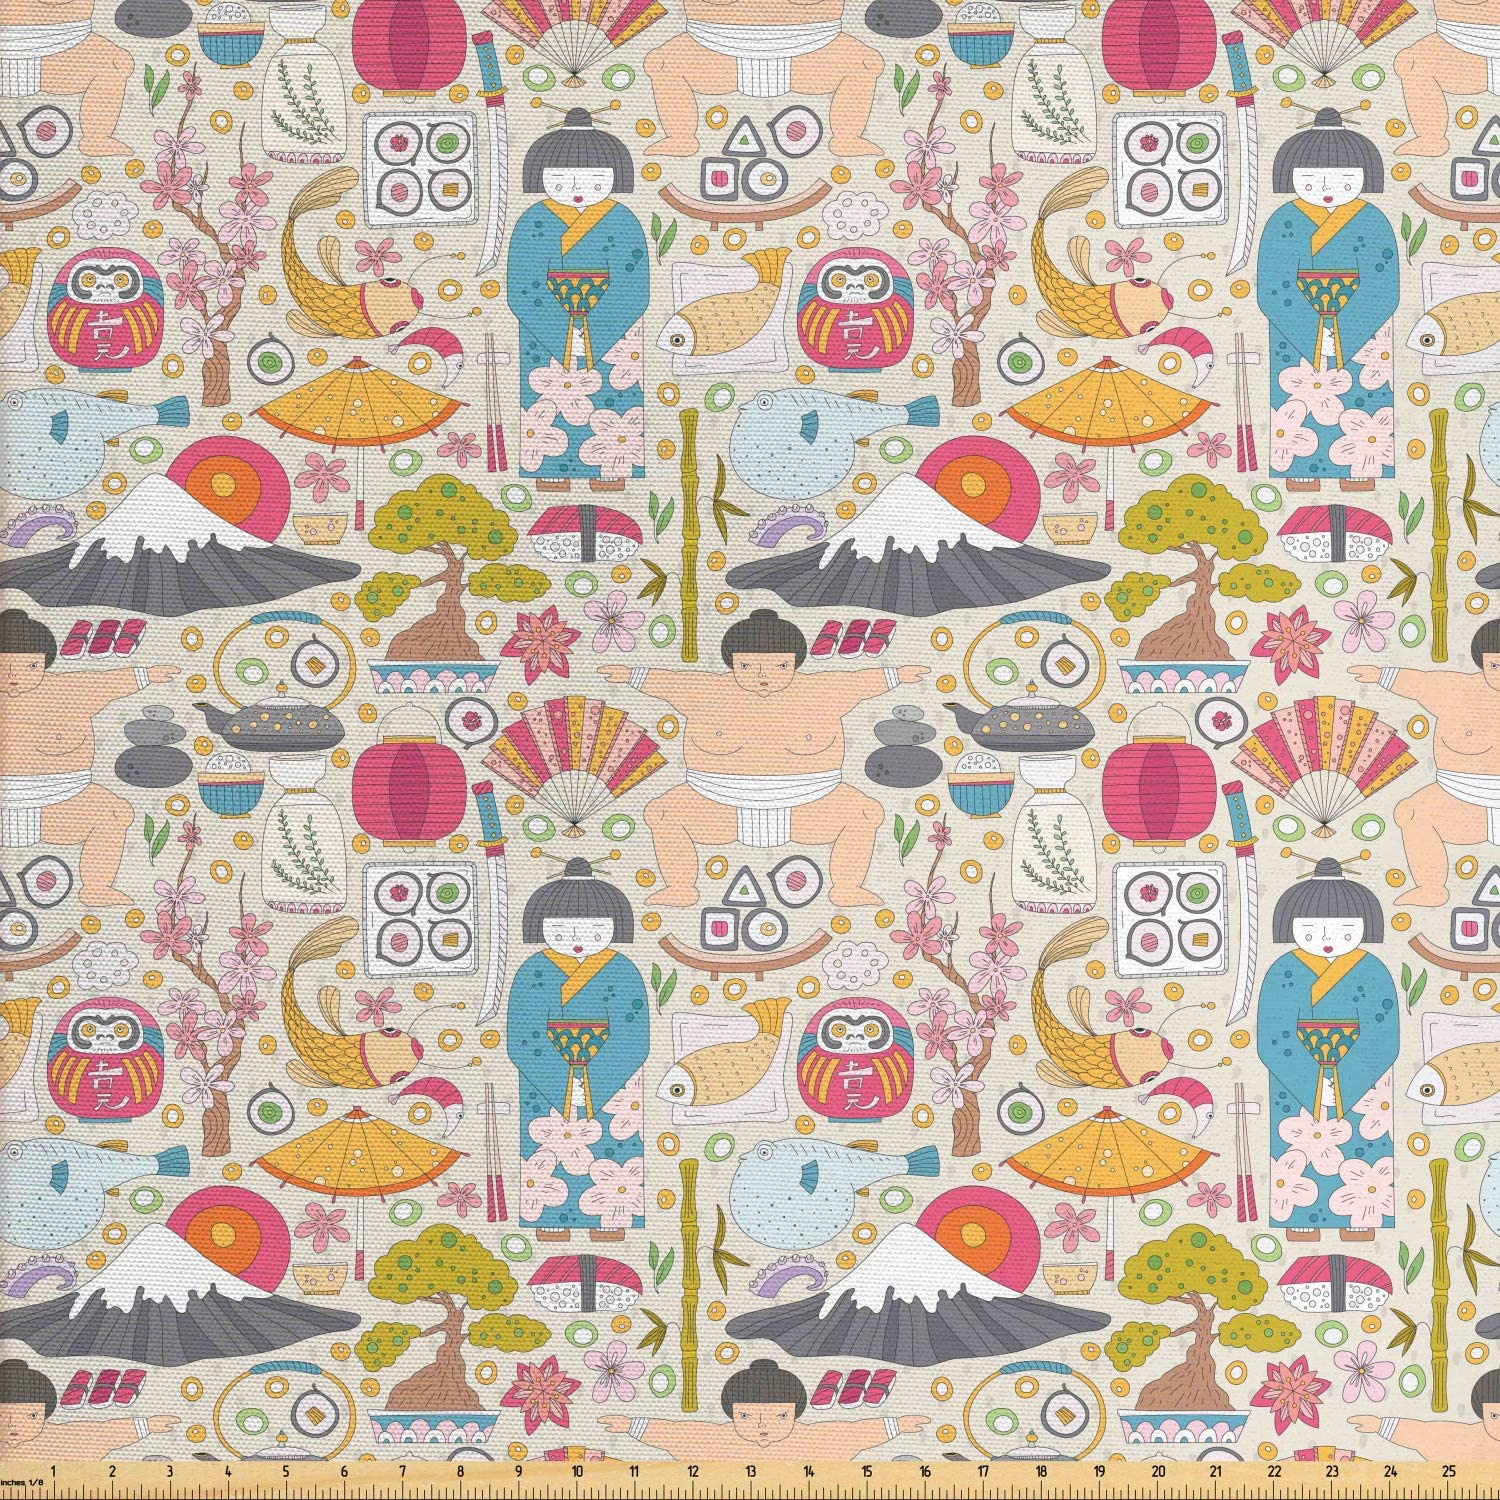 Lunarable Japanese Fabric by The Yard, Sushi Mount Hill Sumo Wrestler Land of The Rising Sun Motifs Travel Holiday, Decorative Fabric for Upholstery and Home Accents, 2 Yards, Peach Pink